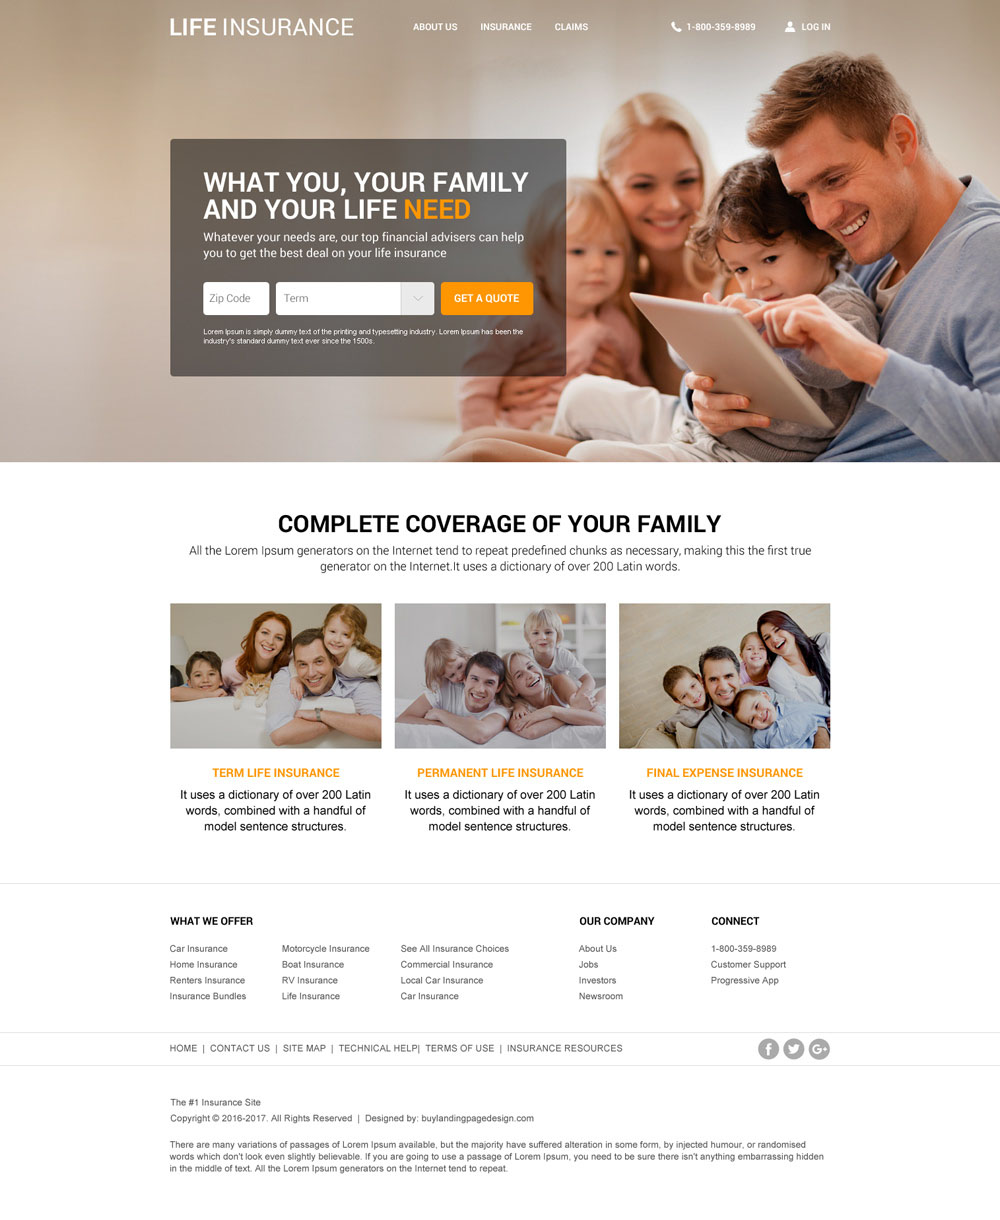 life-insurance-agency-responsive-website-template-to-create-beautiful-agency-website-001-index